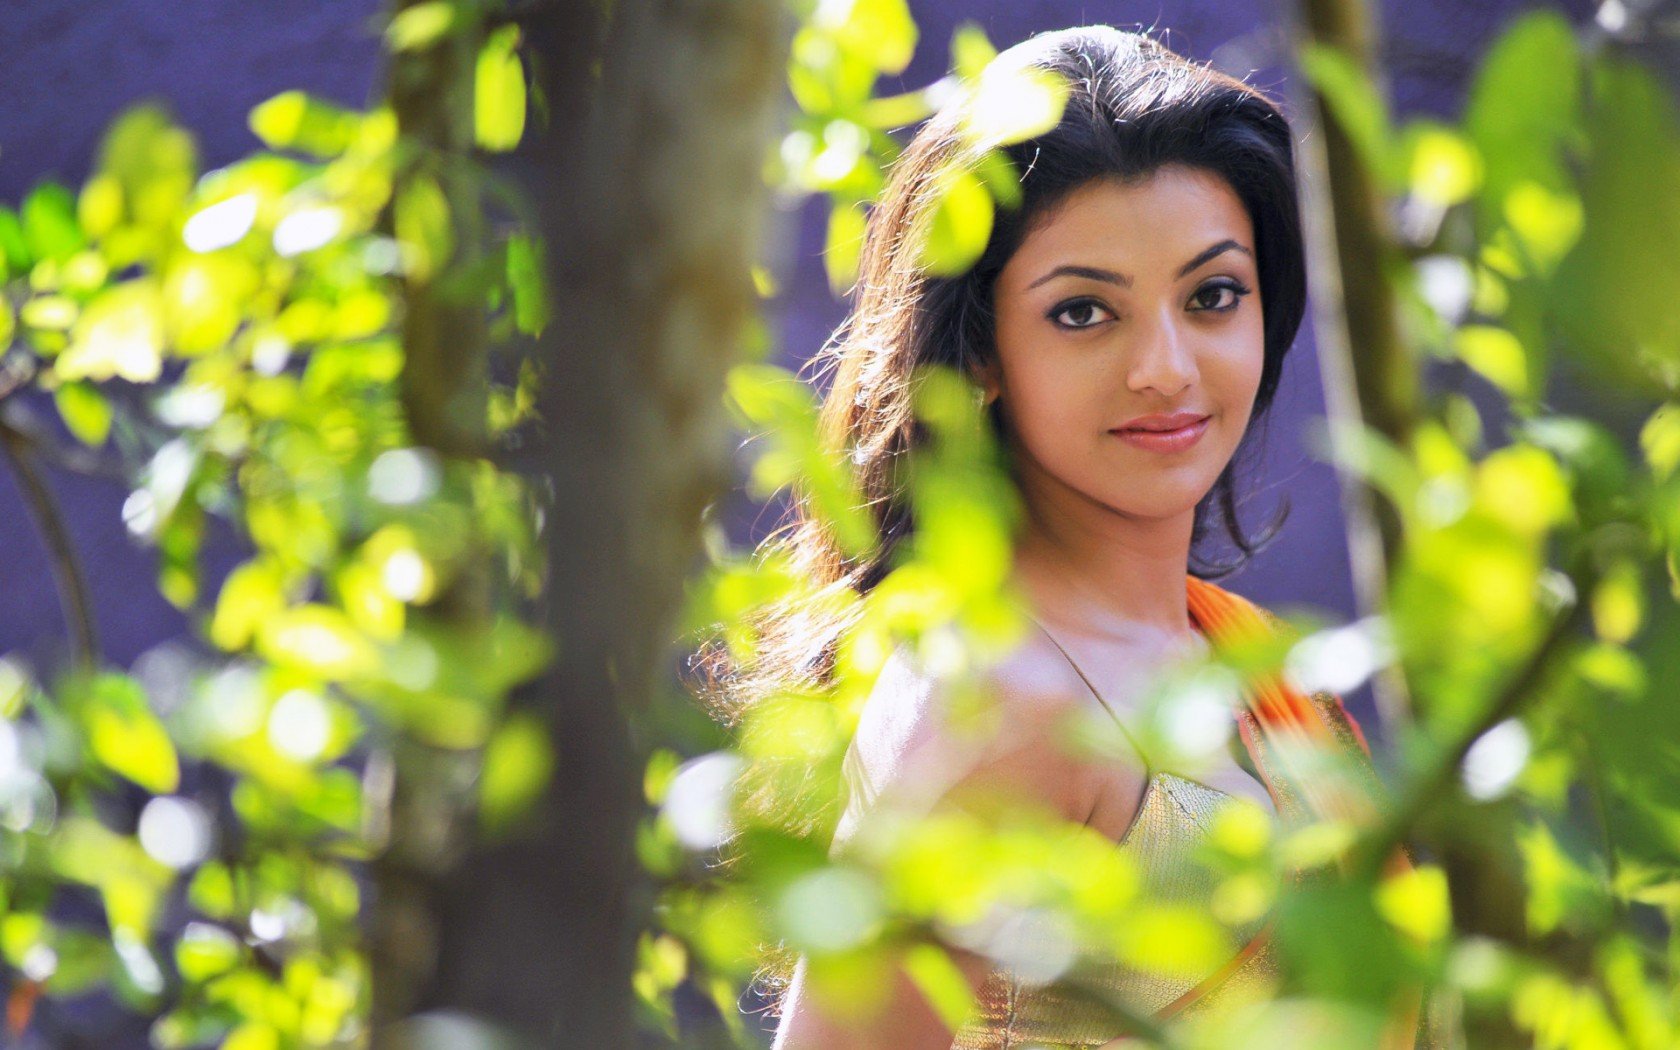 Cute Inspirational Quotes Wallpapers Kajal Agarwal 2014 Wallpapers Hd Wallpapers Id 14124